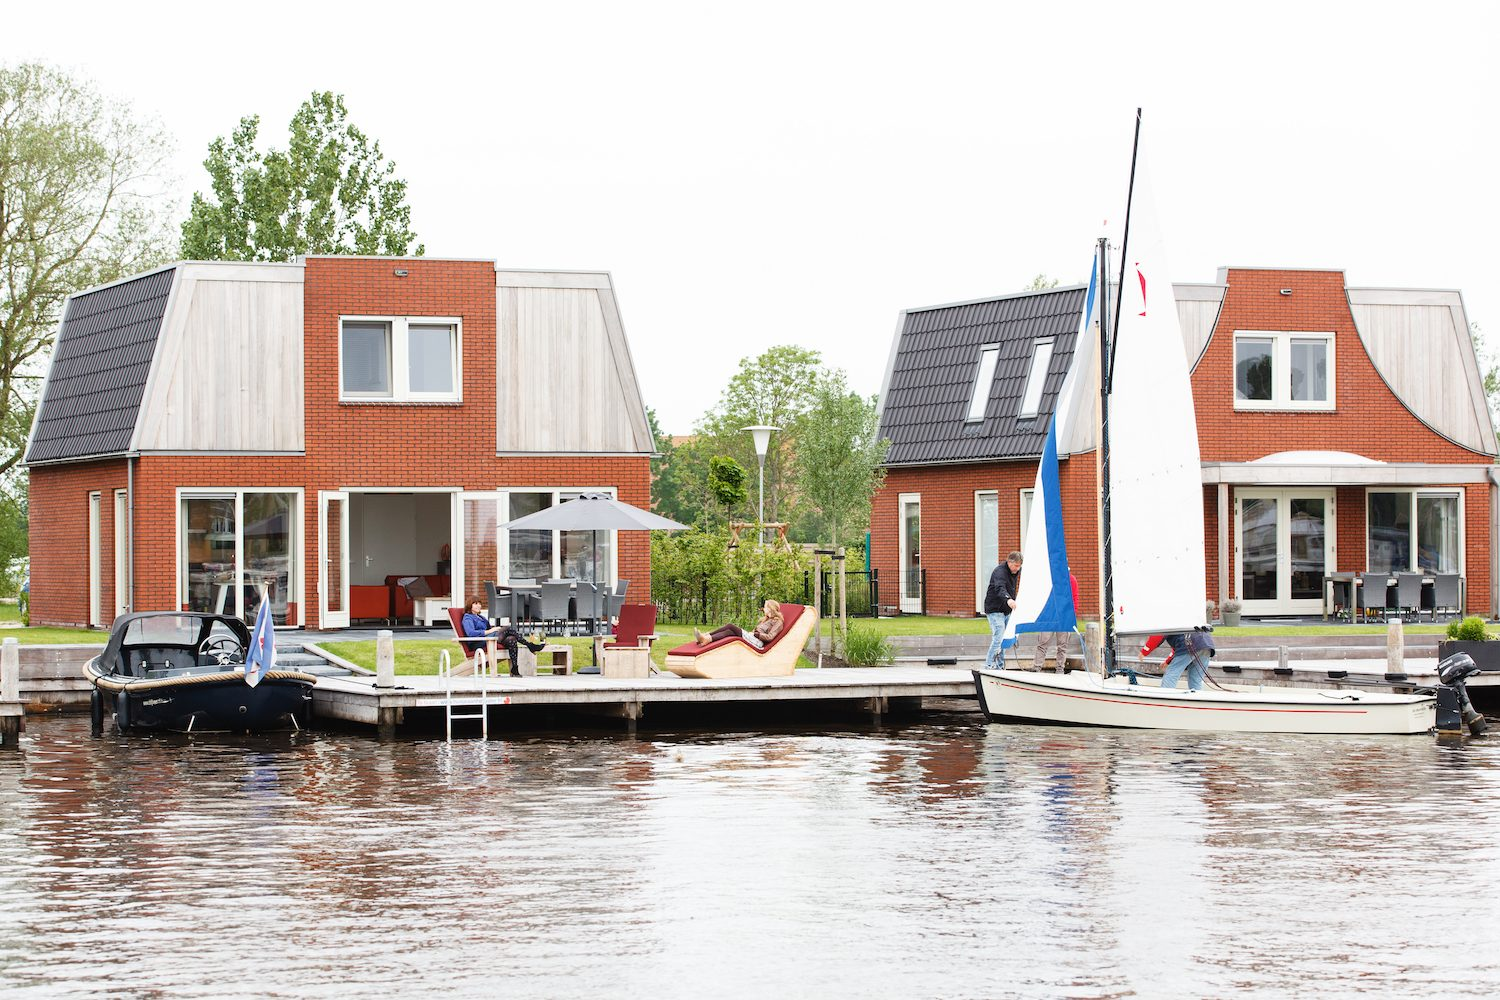 Holiday home with dinghy